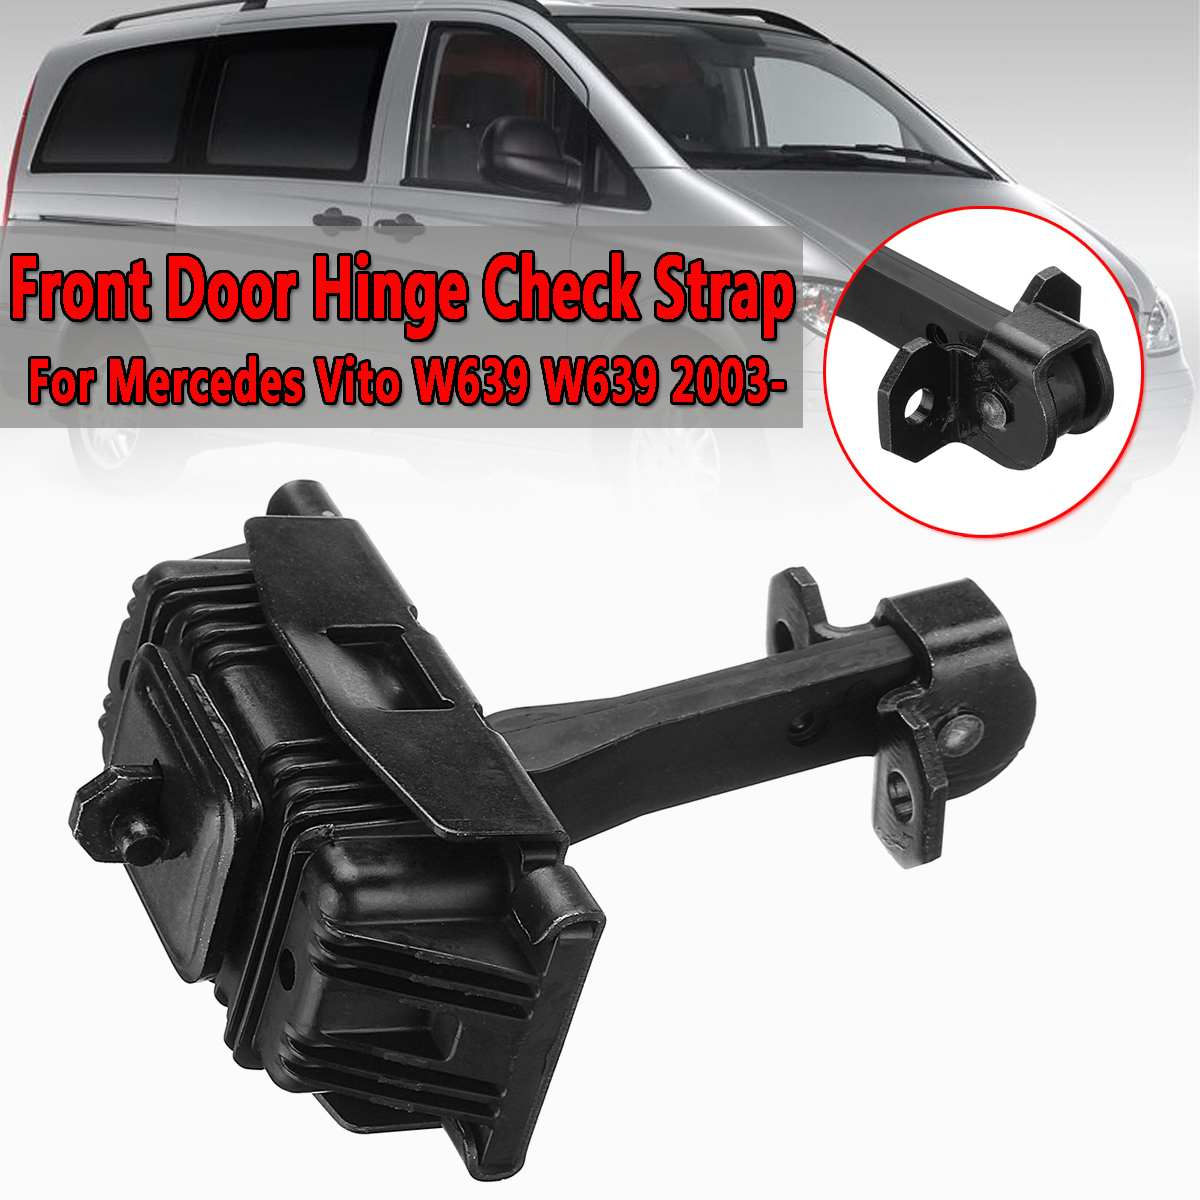 1 Pcs Car Front Door Hinge Check Strap For <font><b>Mercedes</b></font> <font><b>Vito</b></font> Viano <font><b>W639</b></font> 2003-Onwards Front Door Check Arm Stop Hinge Strap Actuator image